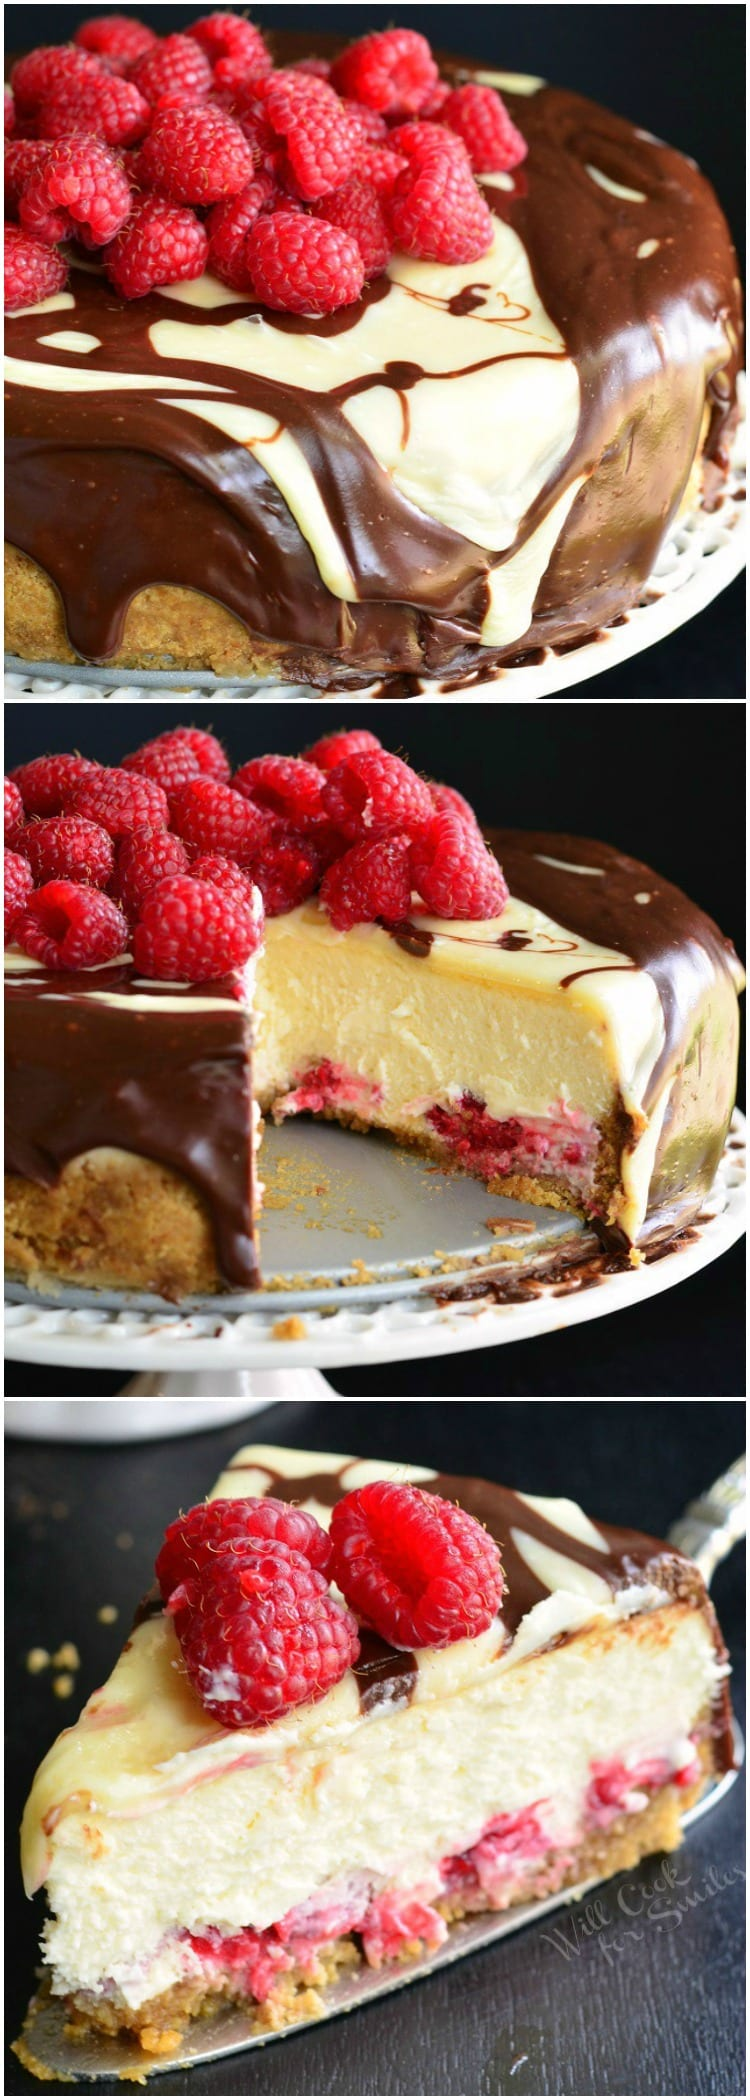 Double Chocolate Ganache and Raspberry Cheesecake with raspberries on top on a cake stand